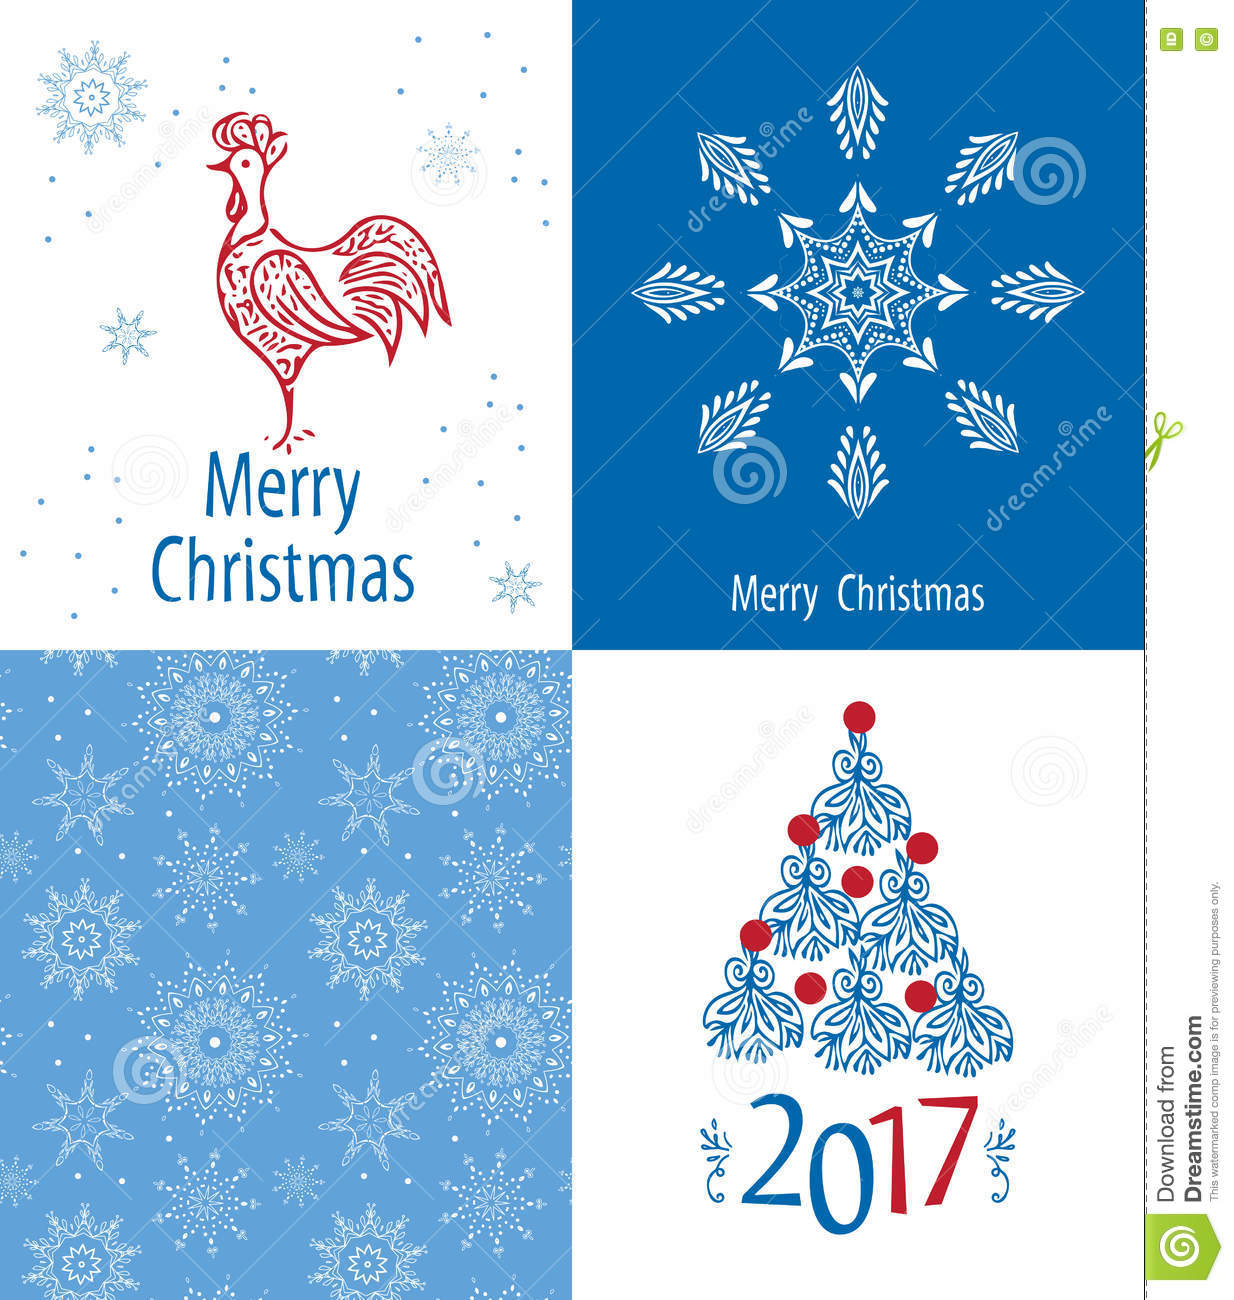 christmas cards set 2017 stock vector illustration of colorful